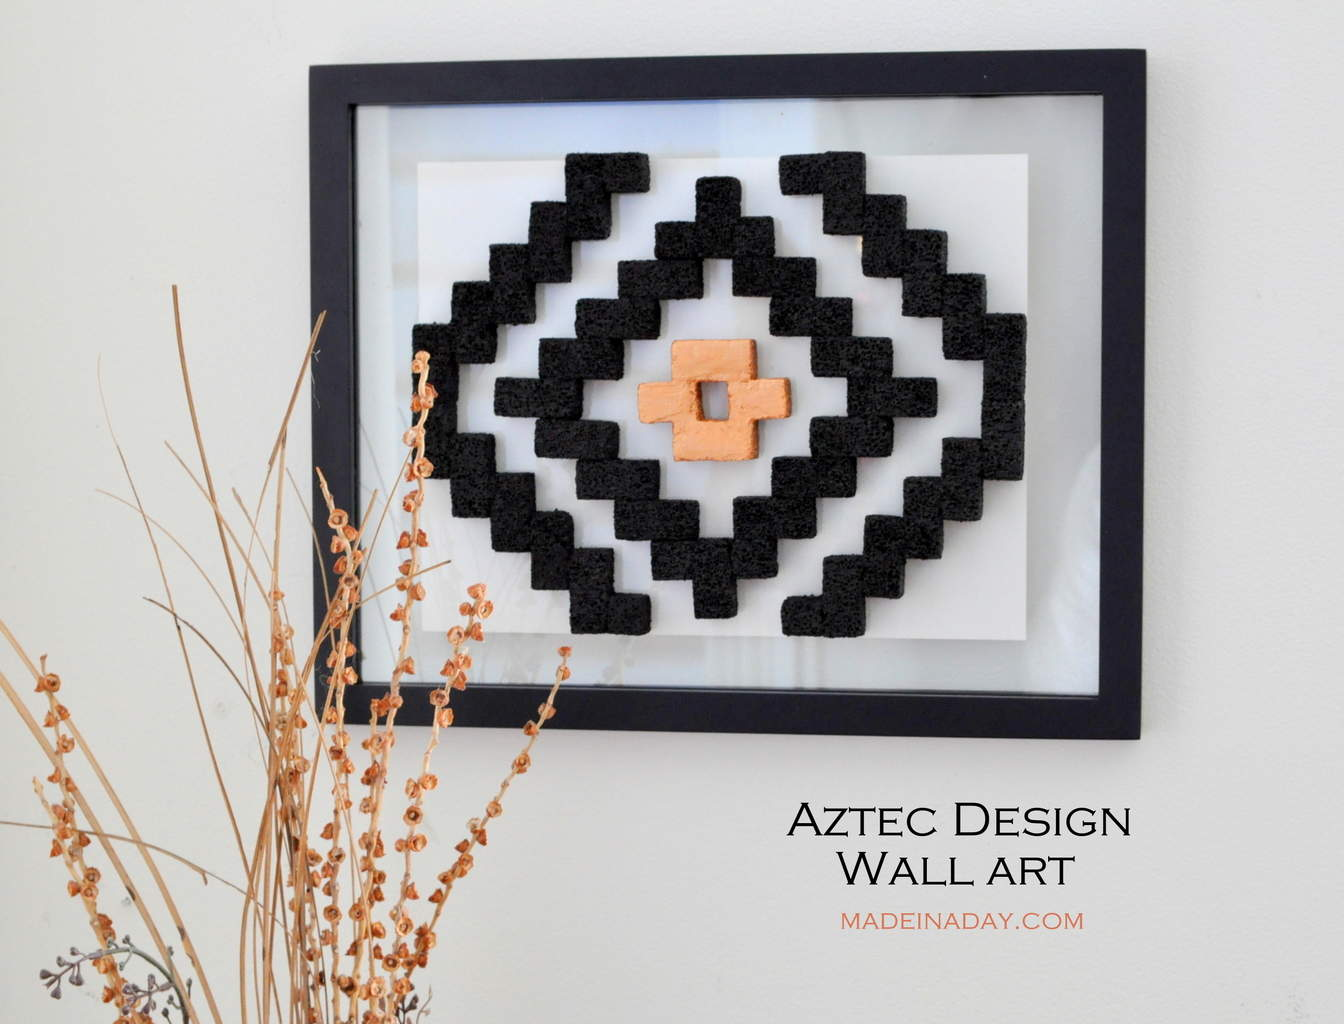 Diy aztec pattern wall art made in a day for Aztec decoration